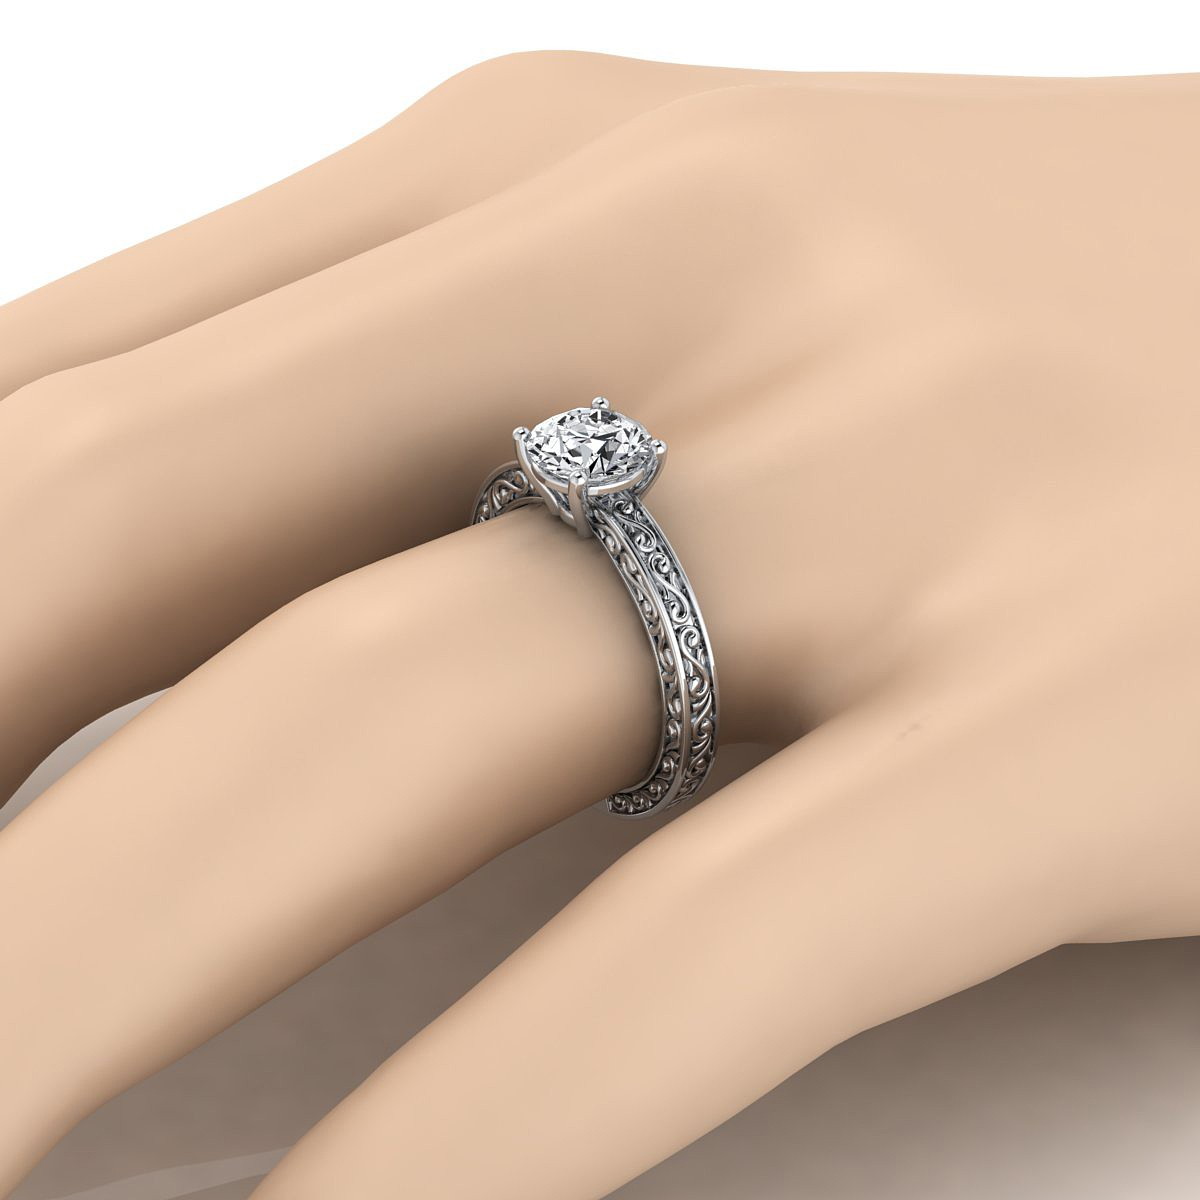 Diamond Solitaire Engagement Ring With Scroll Detail Shank In 14k White Gold